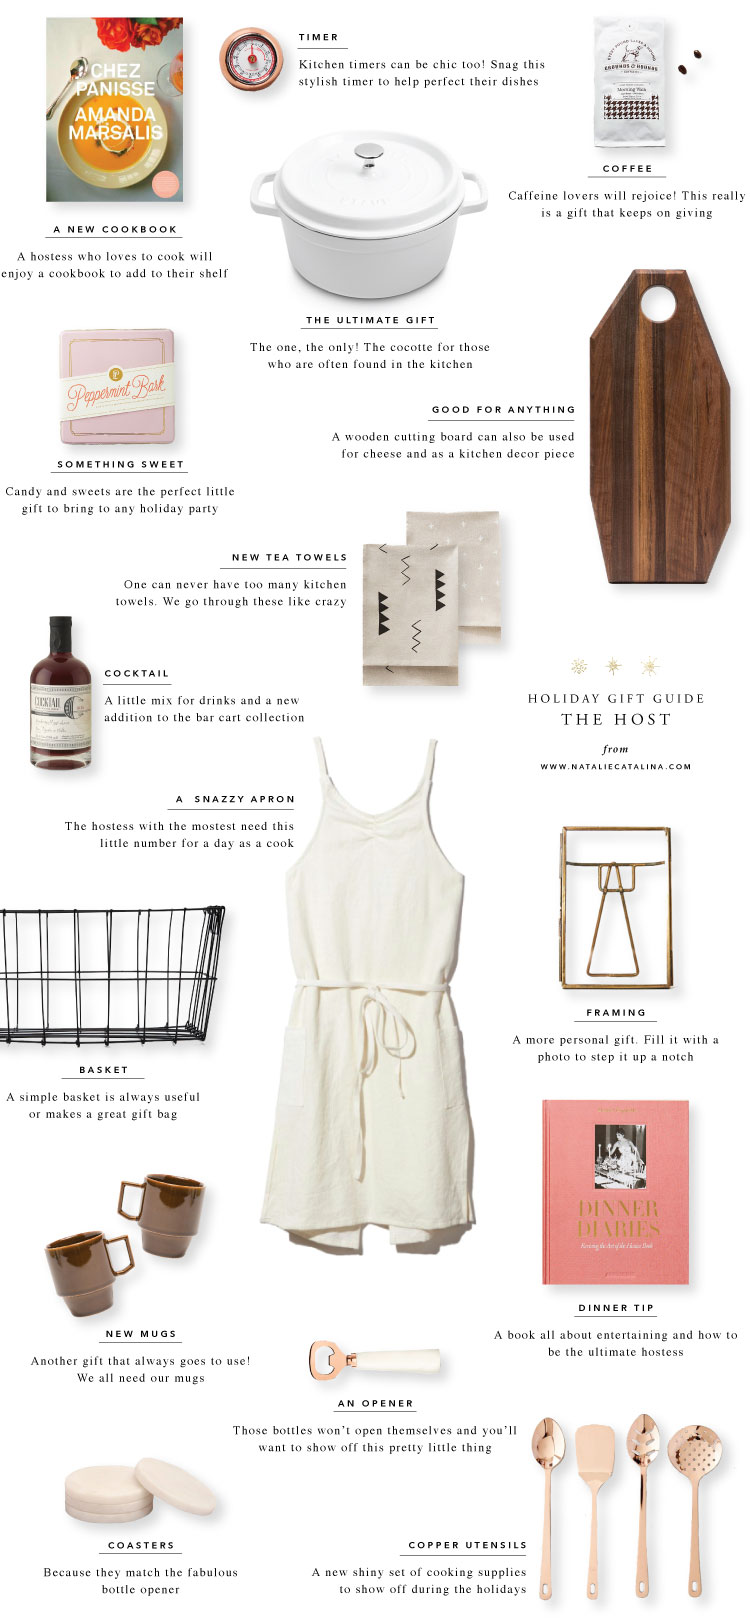 Gift Guide: The Host on Natalie Catalina